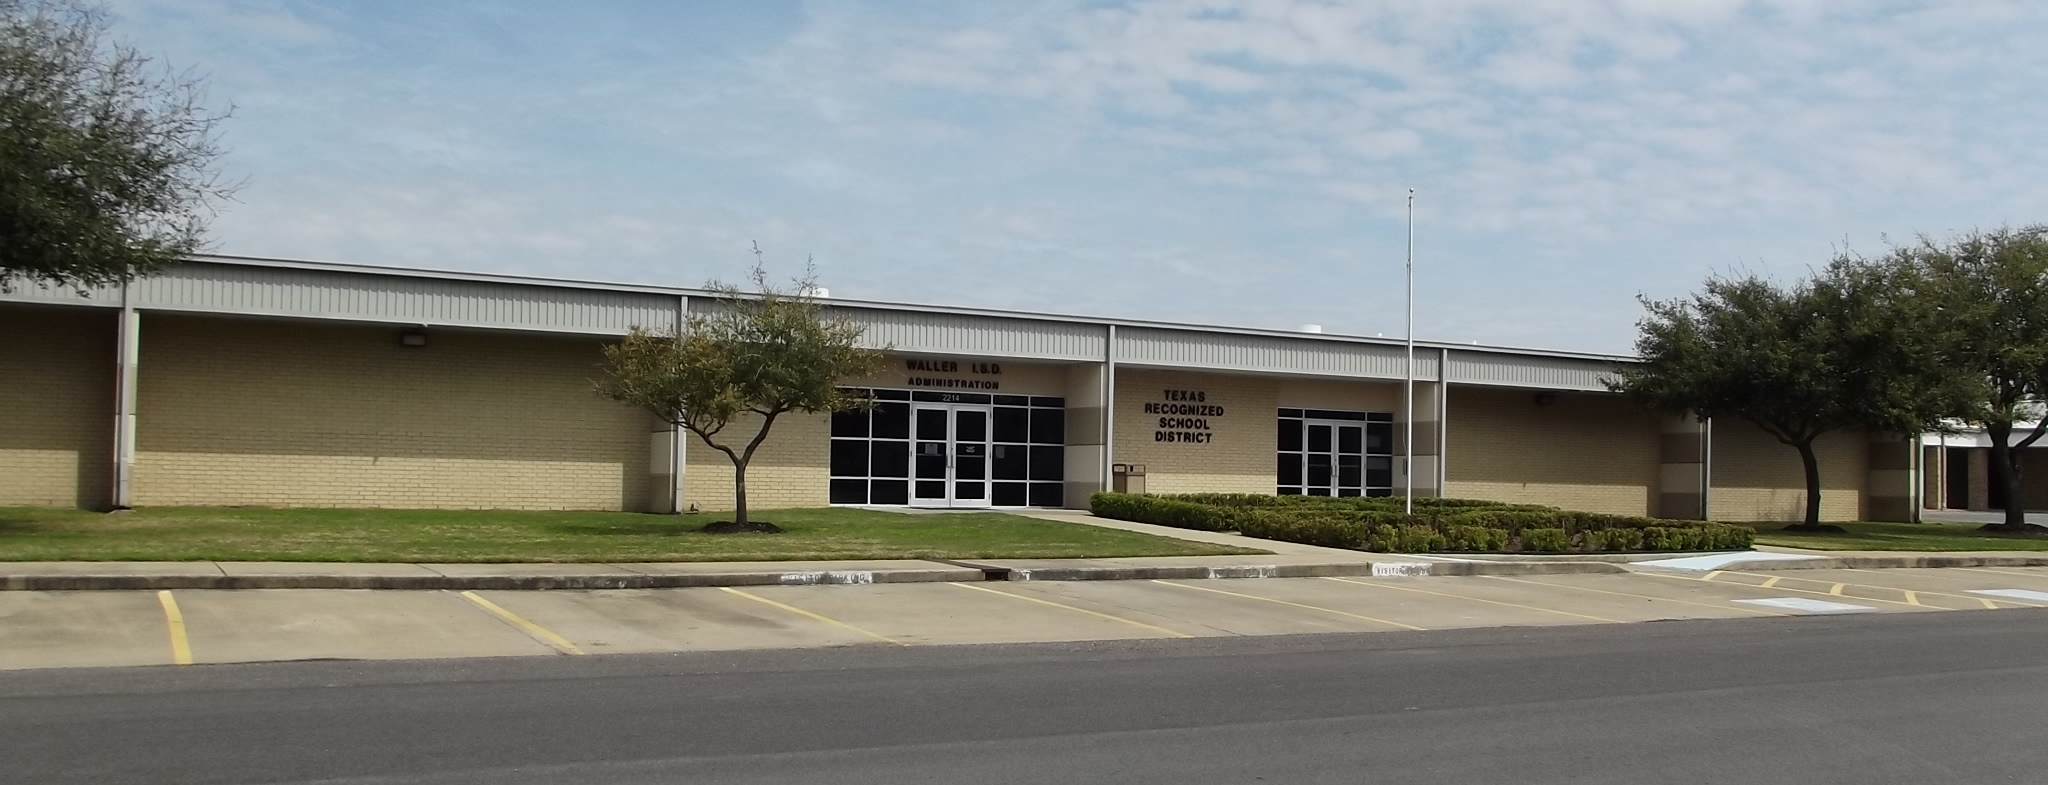 Waller ISD Adminstration Building